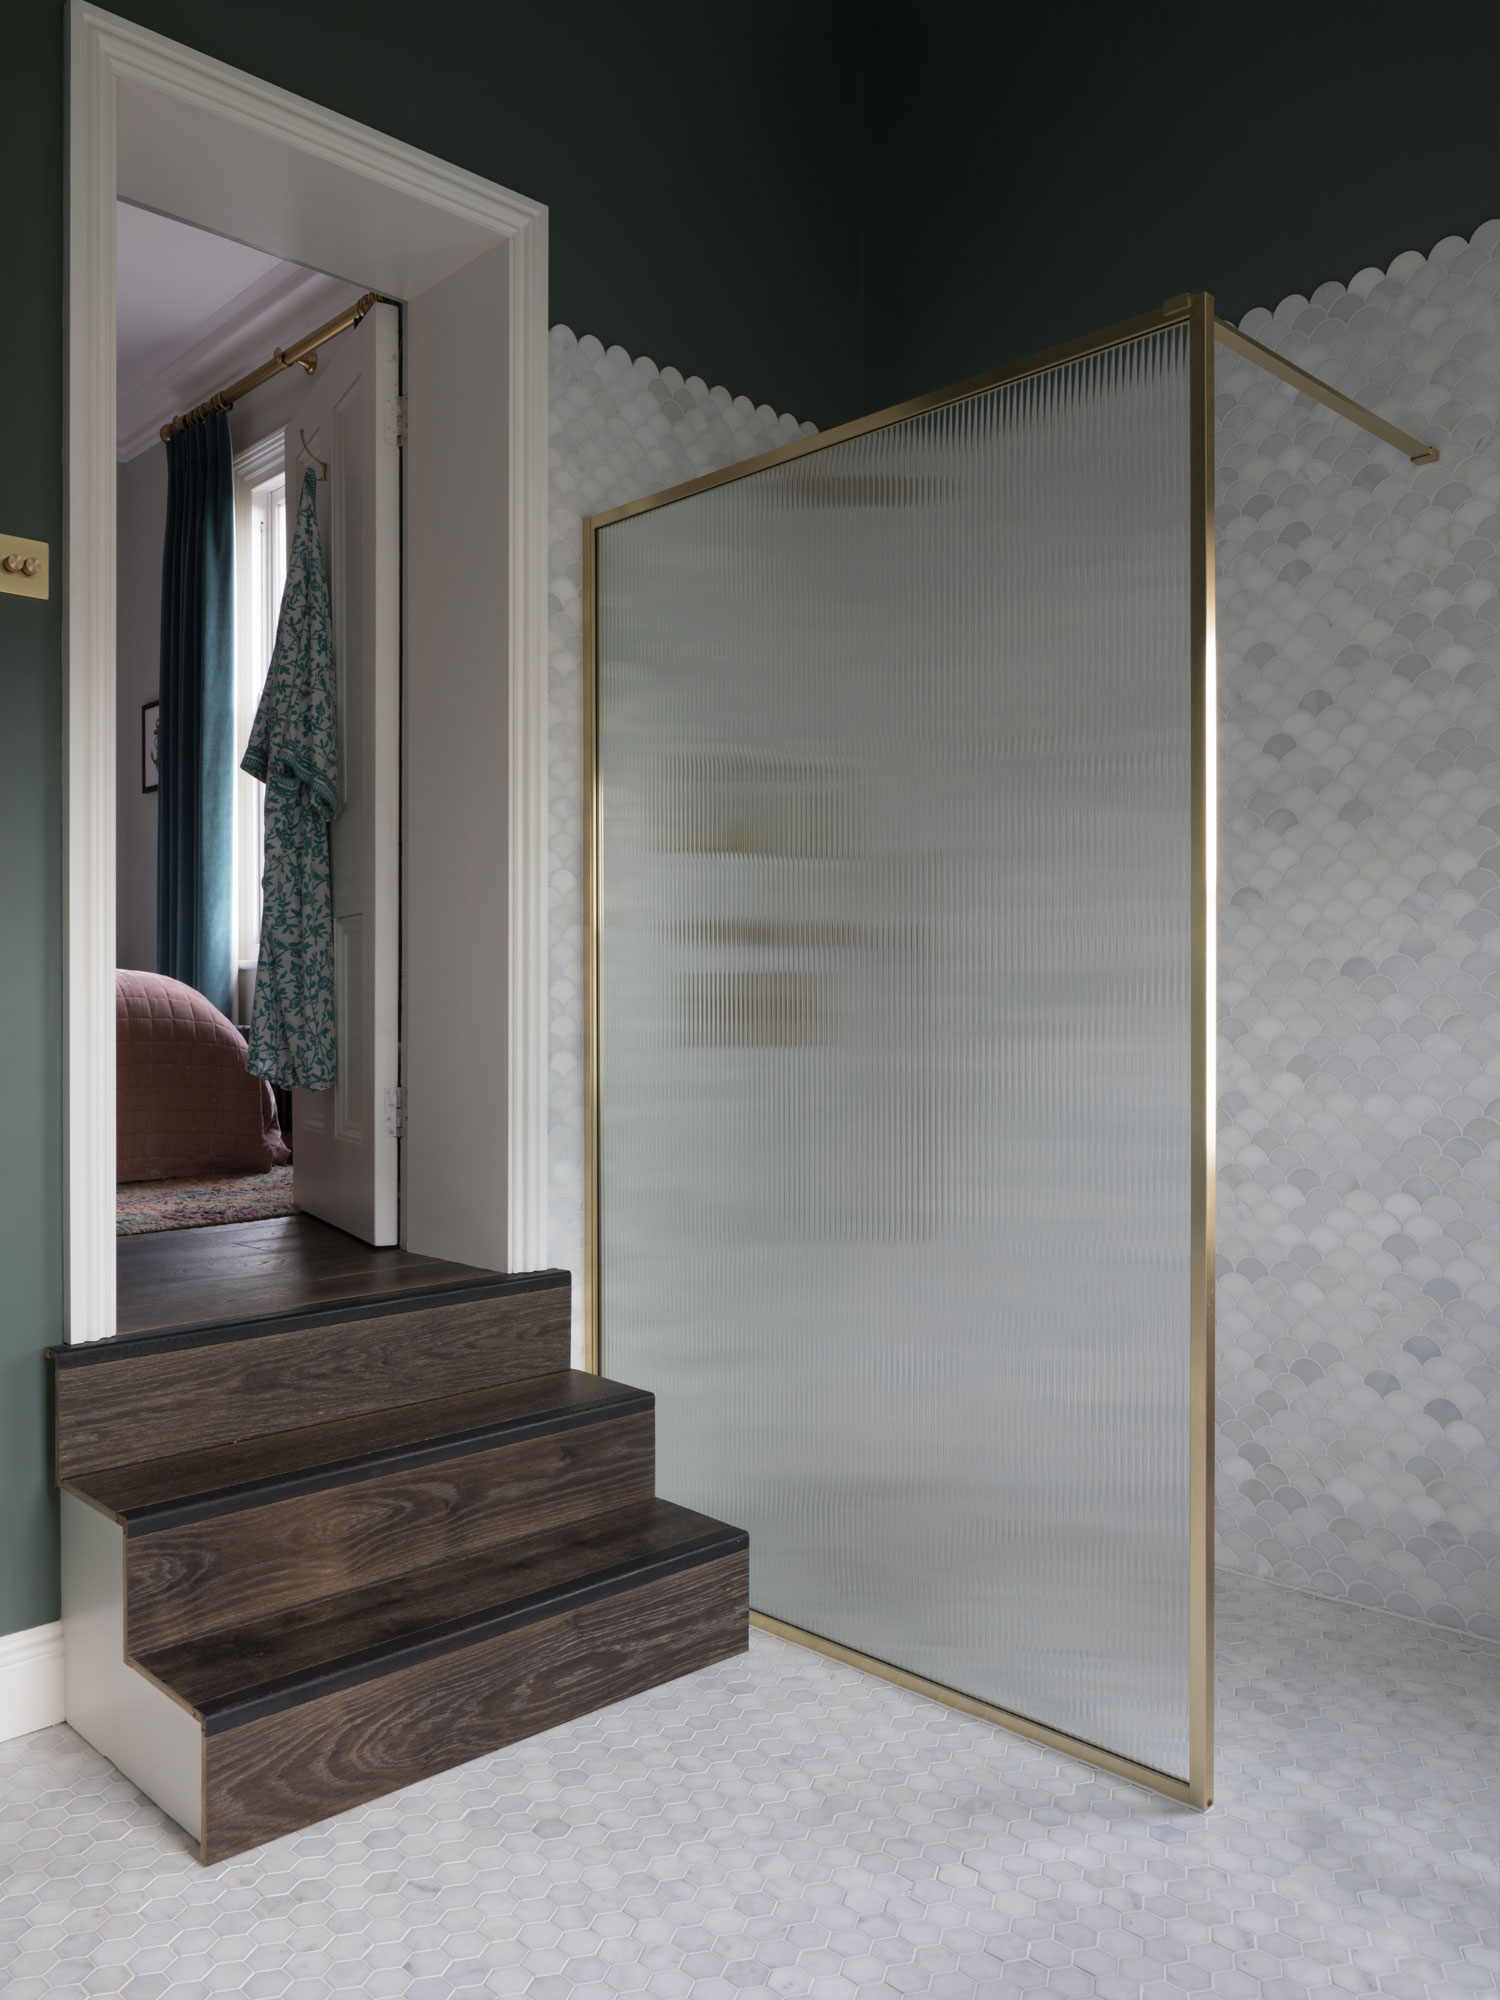 West One Bathrooms Inspiration Turning a Spare Room into a Large Bathroom image1b